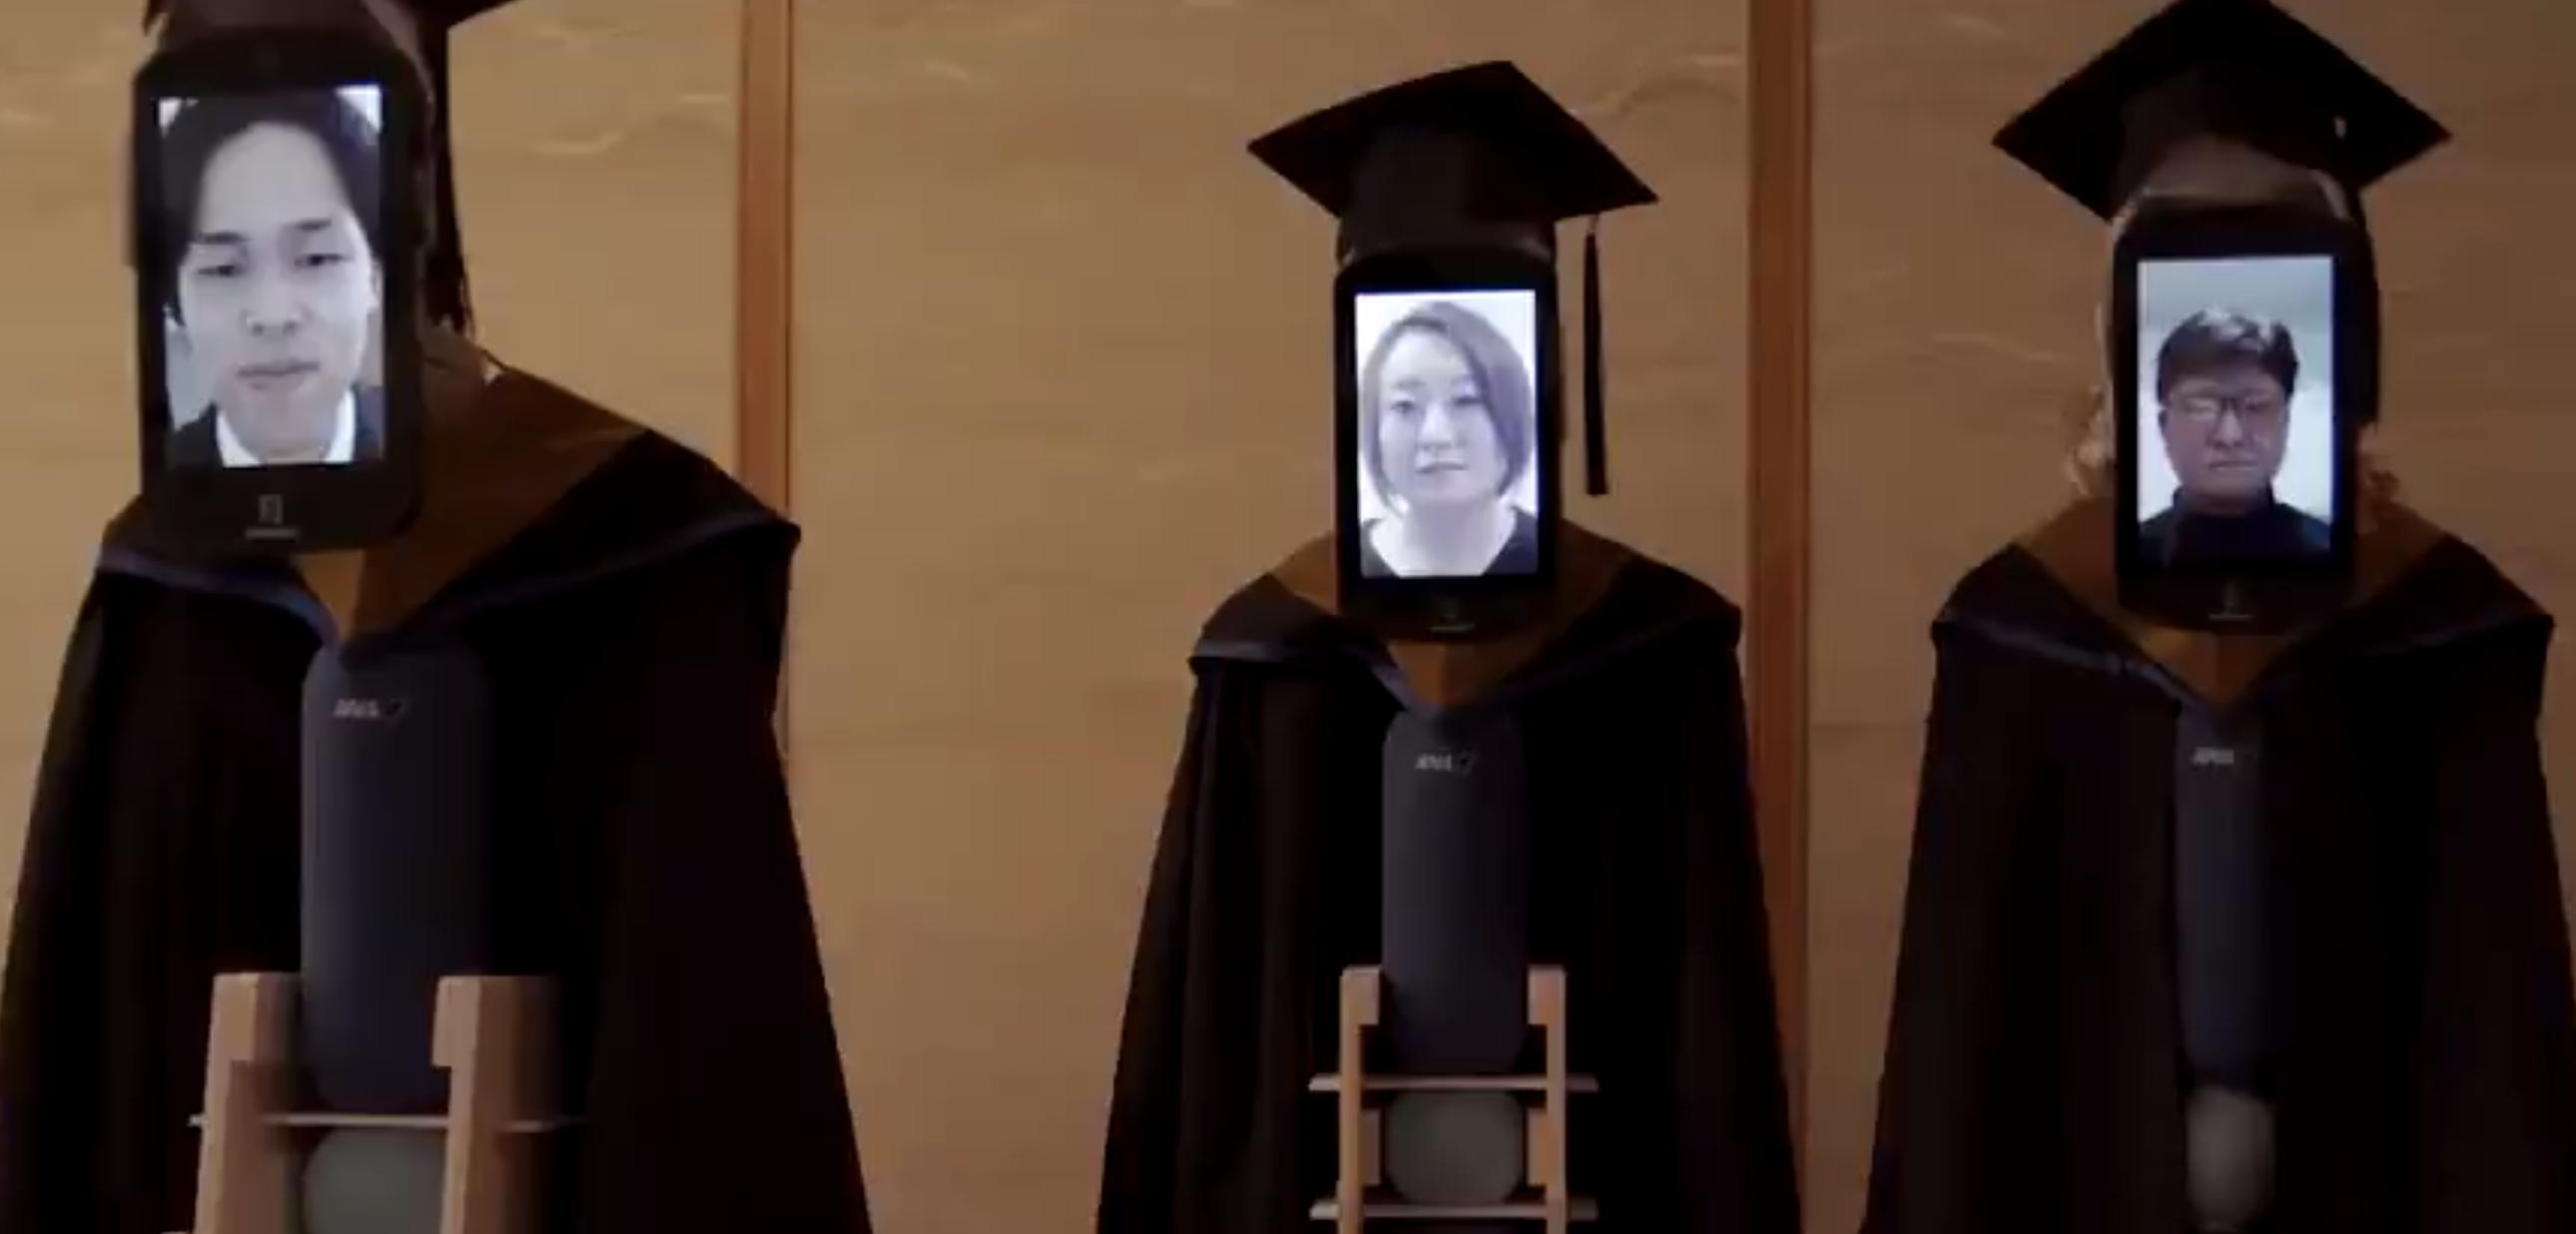 Tablets showing the faces of university students attached to telepresence robots wearings academic caps and gowns